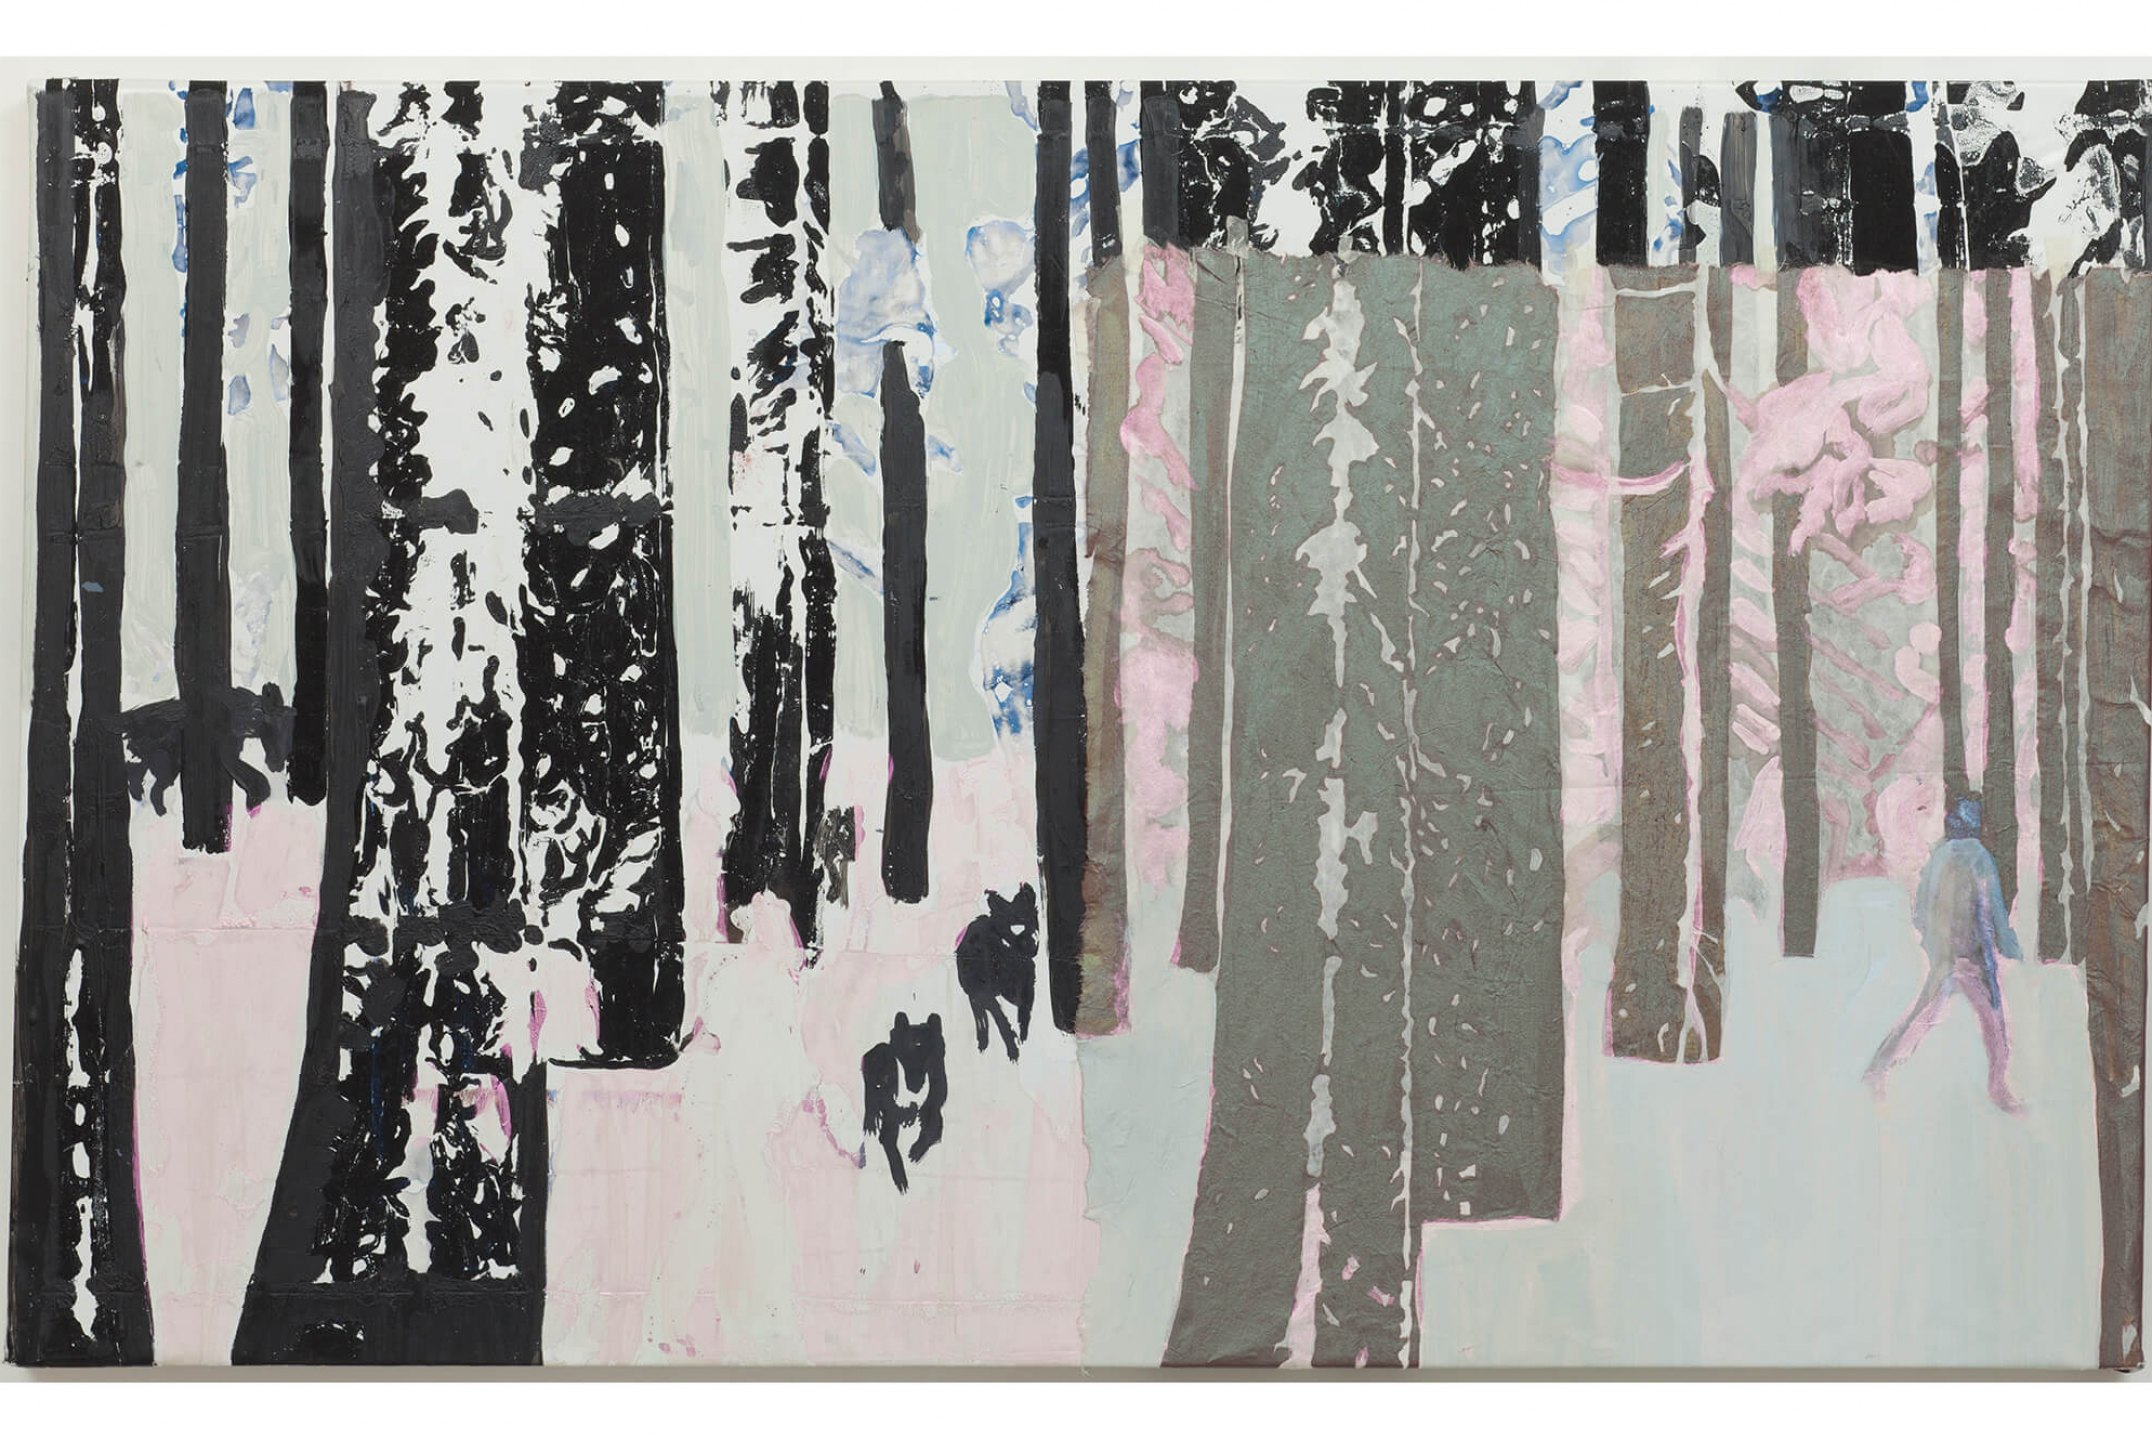 Marina Perez Simão, <em>Untitled</em>, 2012, acrylic and pigment iridescent on plastic and overlay paper, 23,6× 39,3 inches - Mendes Wood DM